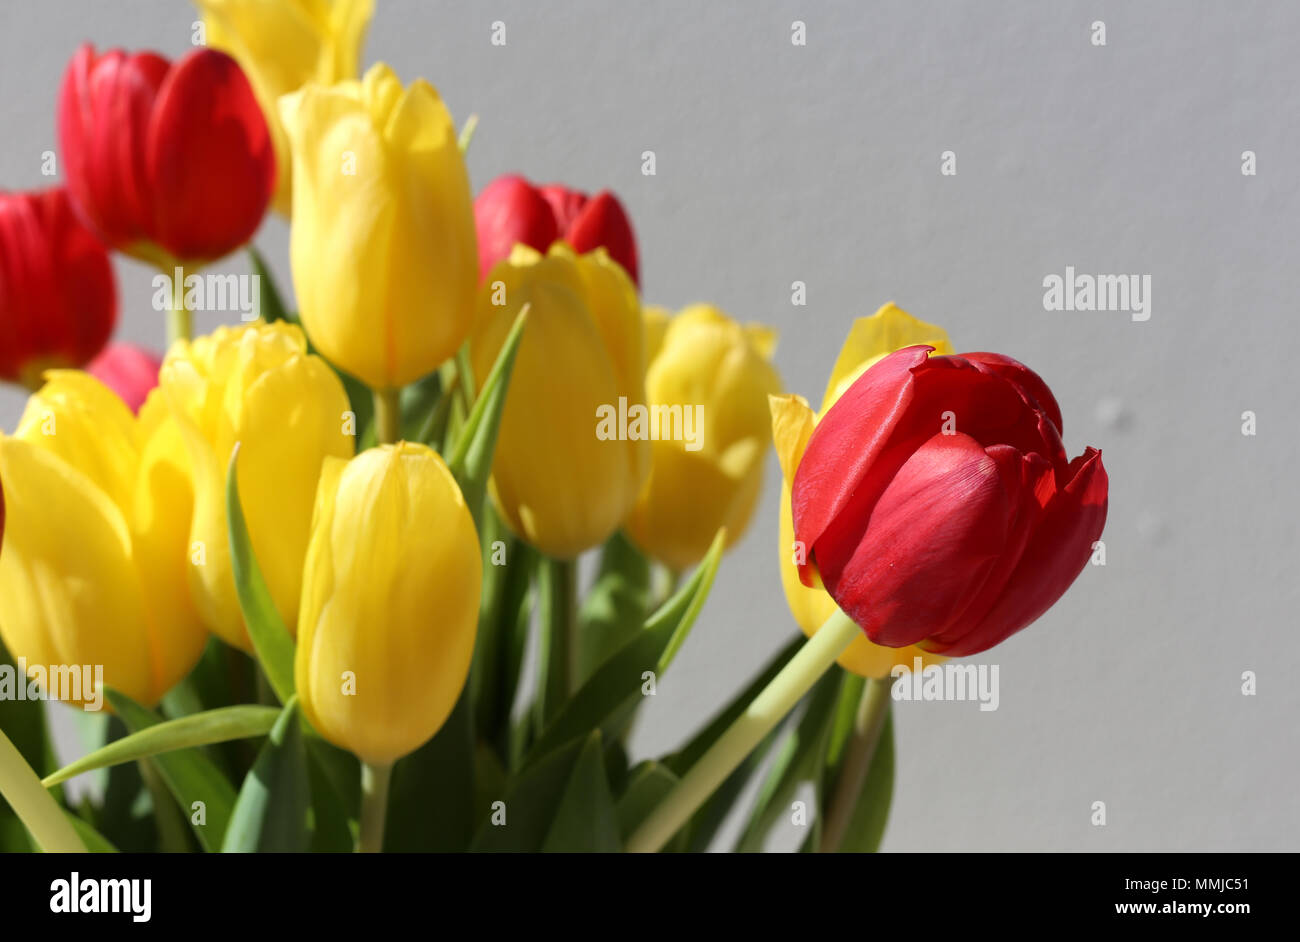 Closeup Of Red And Yellow Tulips In A Vase Photographed During A